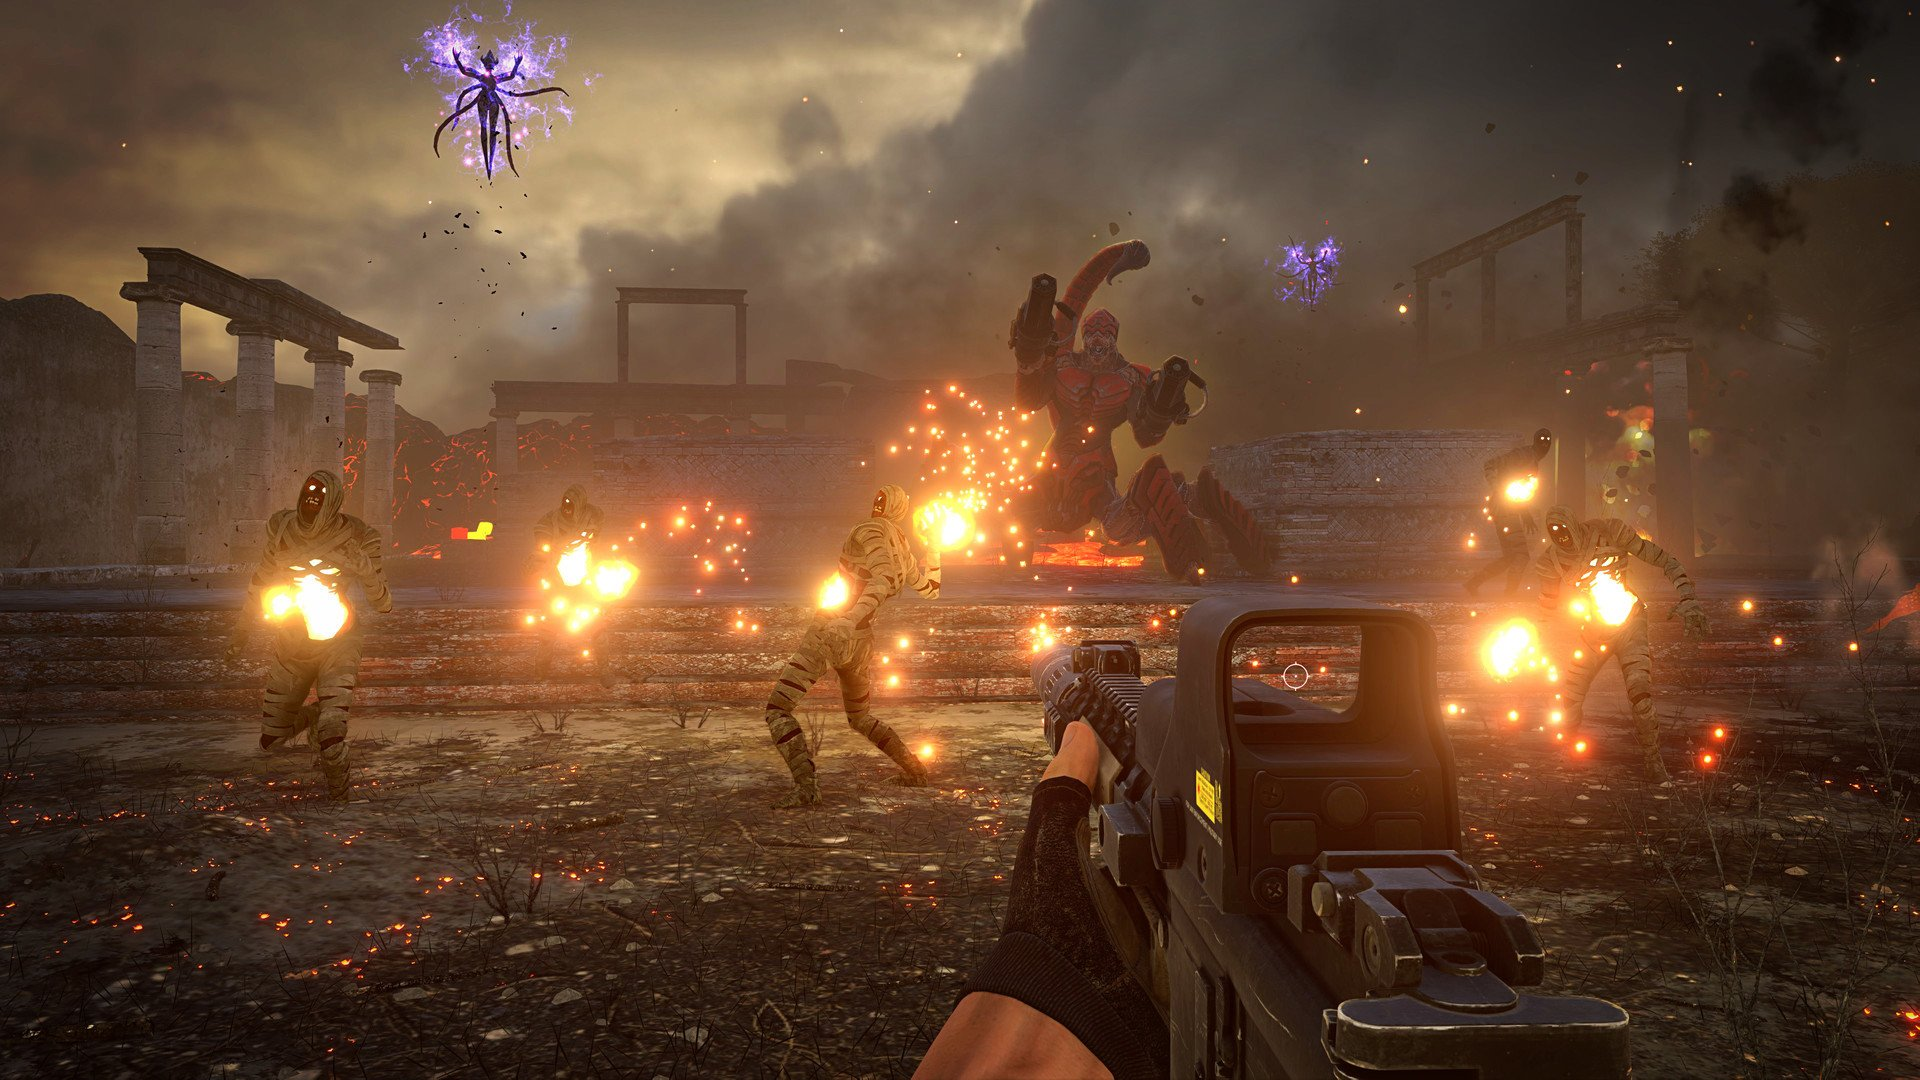 Screenshot for the game Serious Sam 4: Deluxe Edition [v 1.07 + DLC] (2020) download torrent RePack from R. G. Mechanics